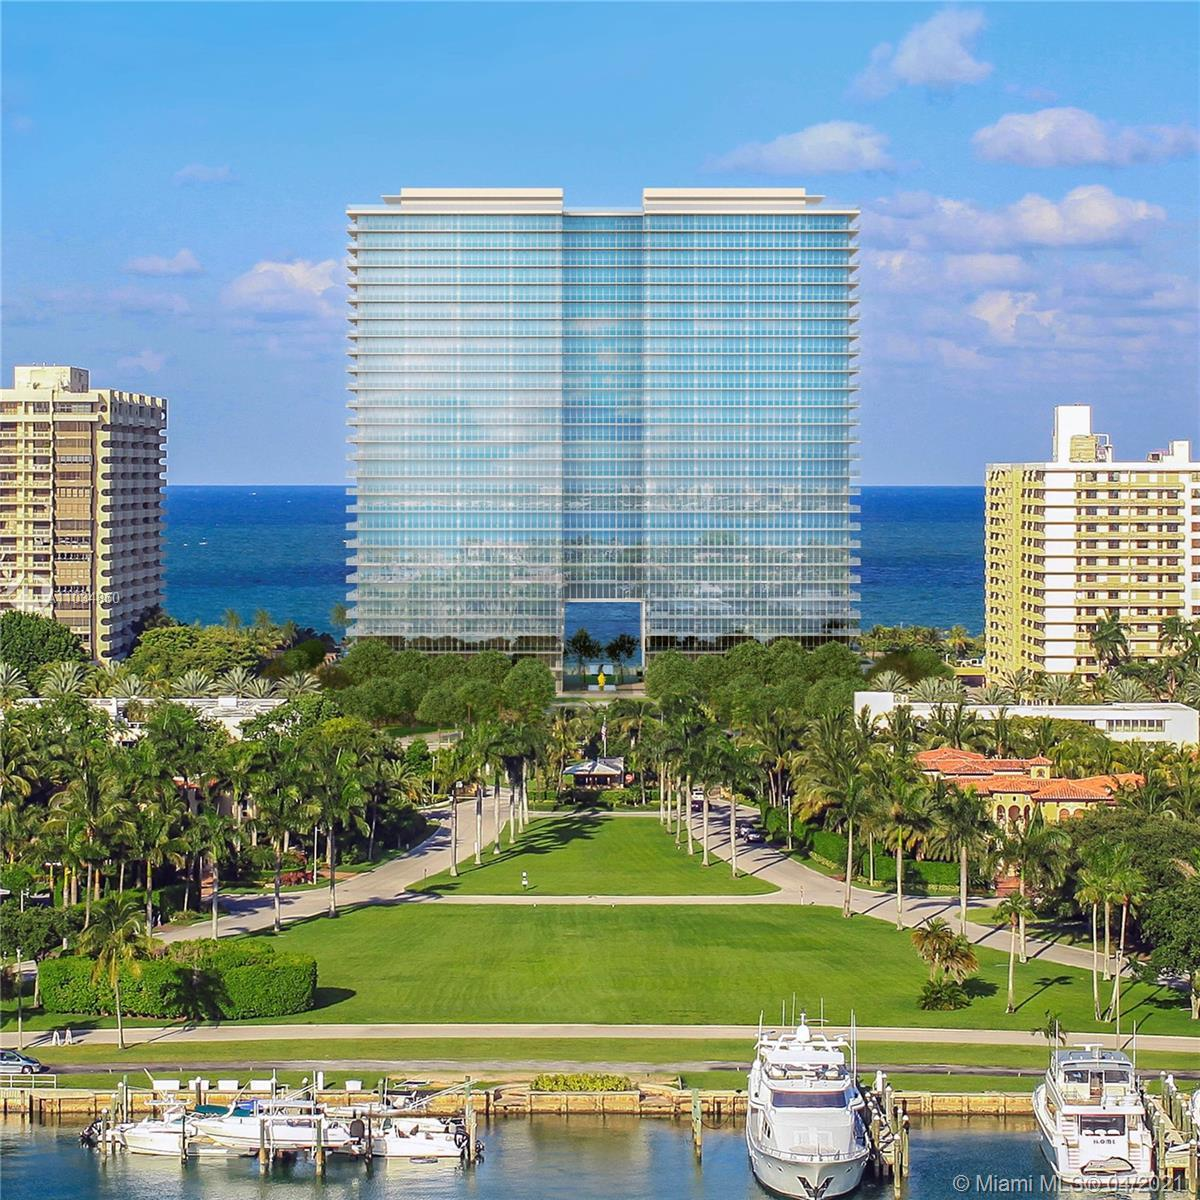 Oceana Bal Harbour: Amazing 1+DEN with unobstructed views to Bay, Marina and City. Deep terraces to